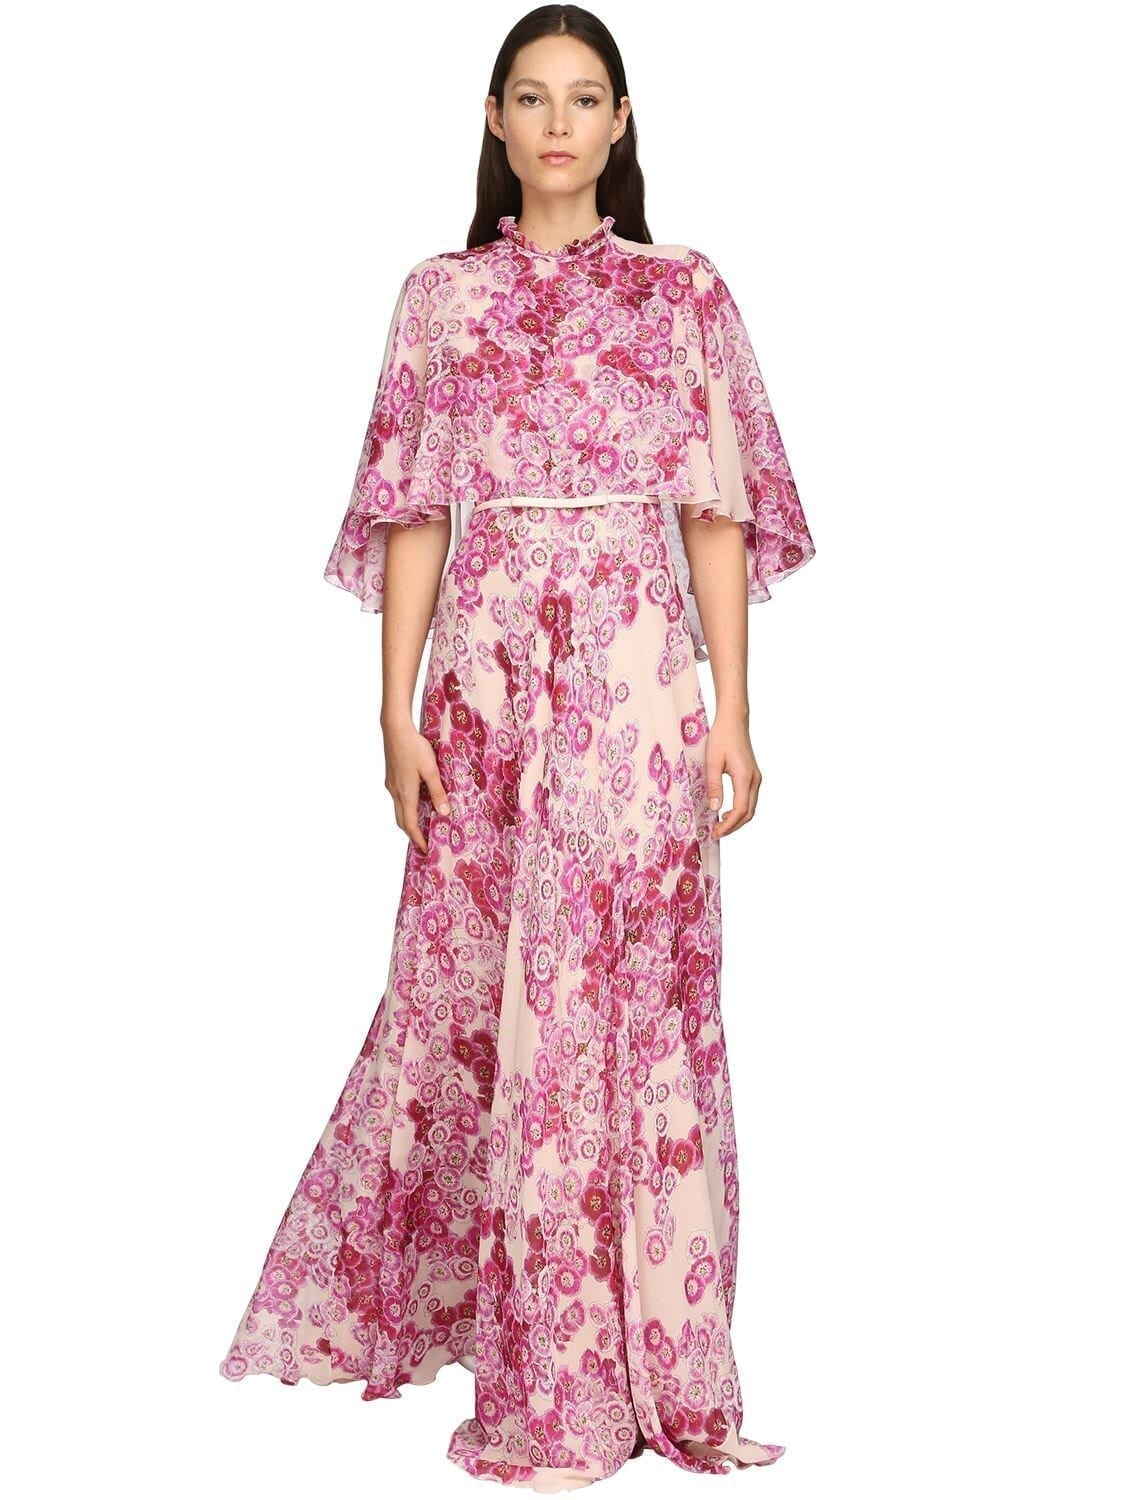 GIAMBATTISTA VALLI Flower Print Silk Georgette Long Dress